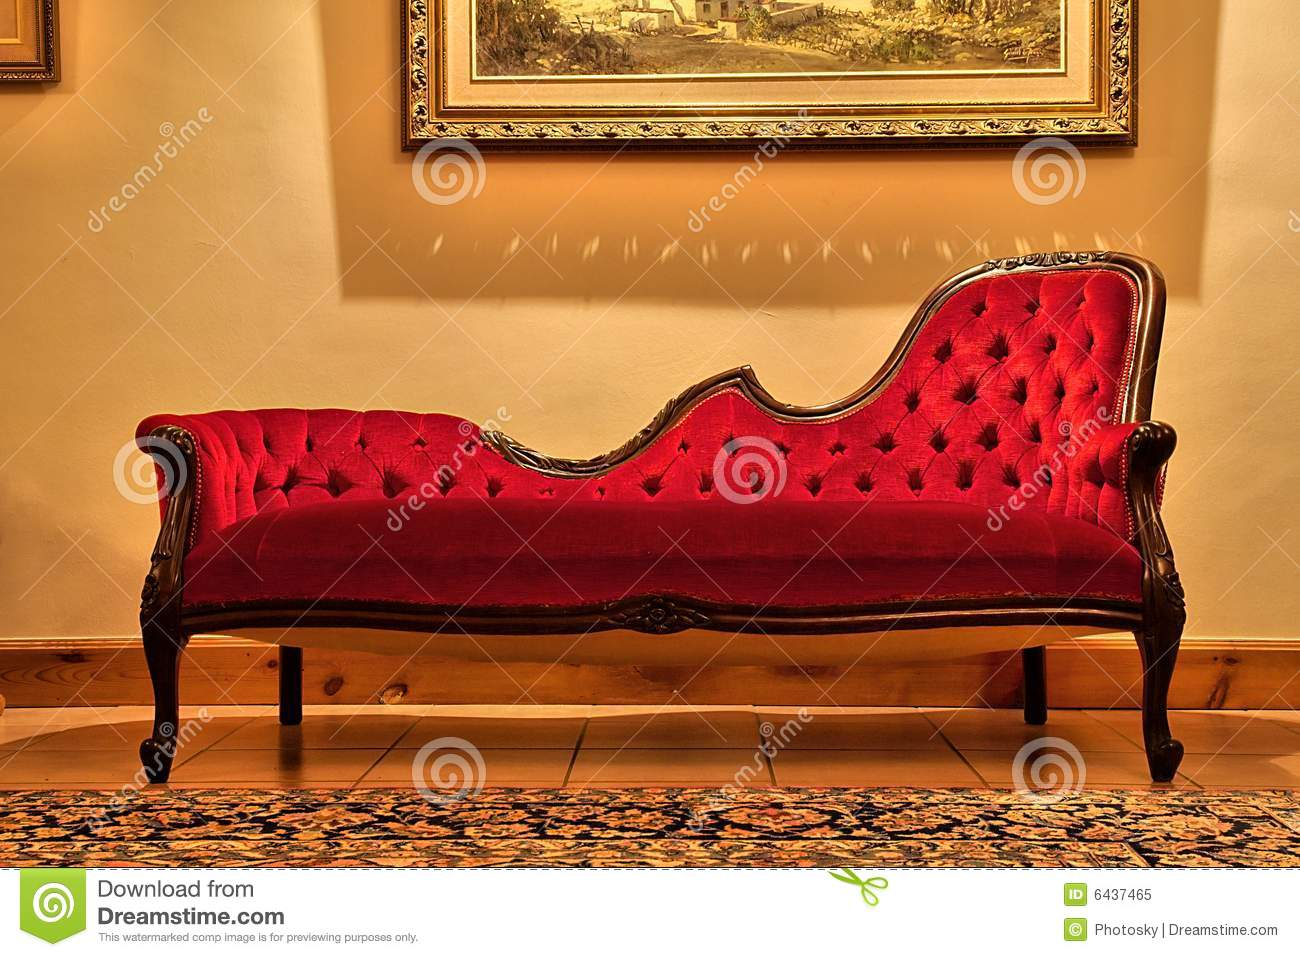 red sofa cafe baku serta bed canada expensive under painting royalty free stock photo